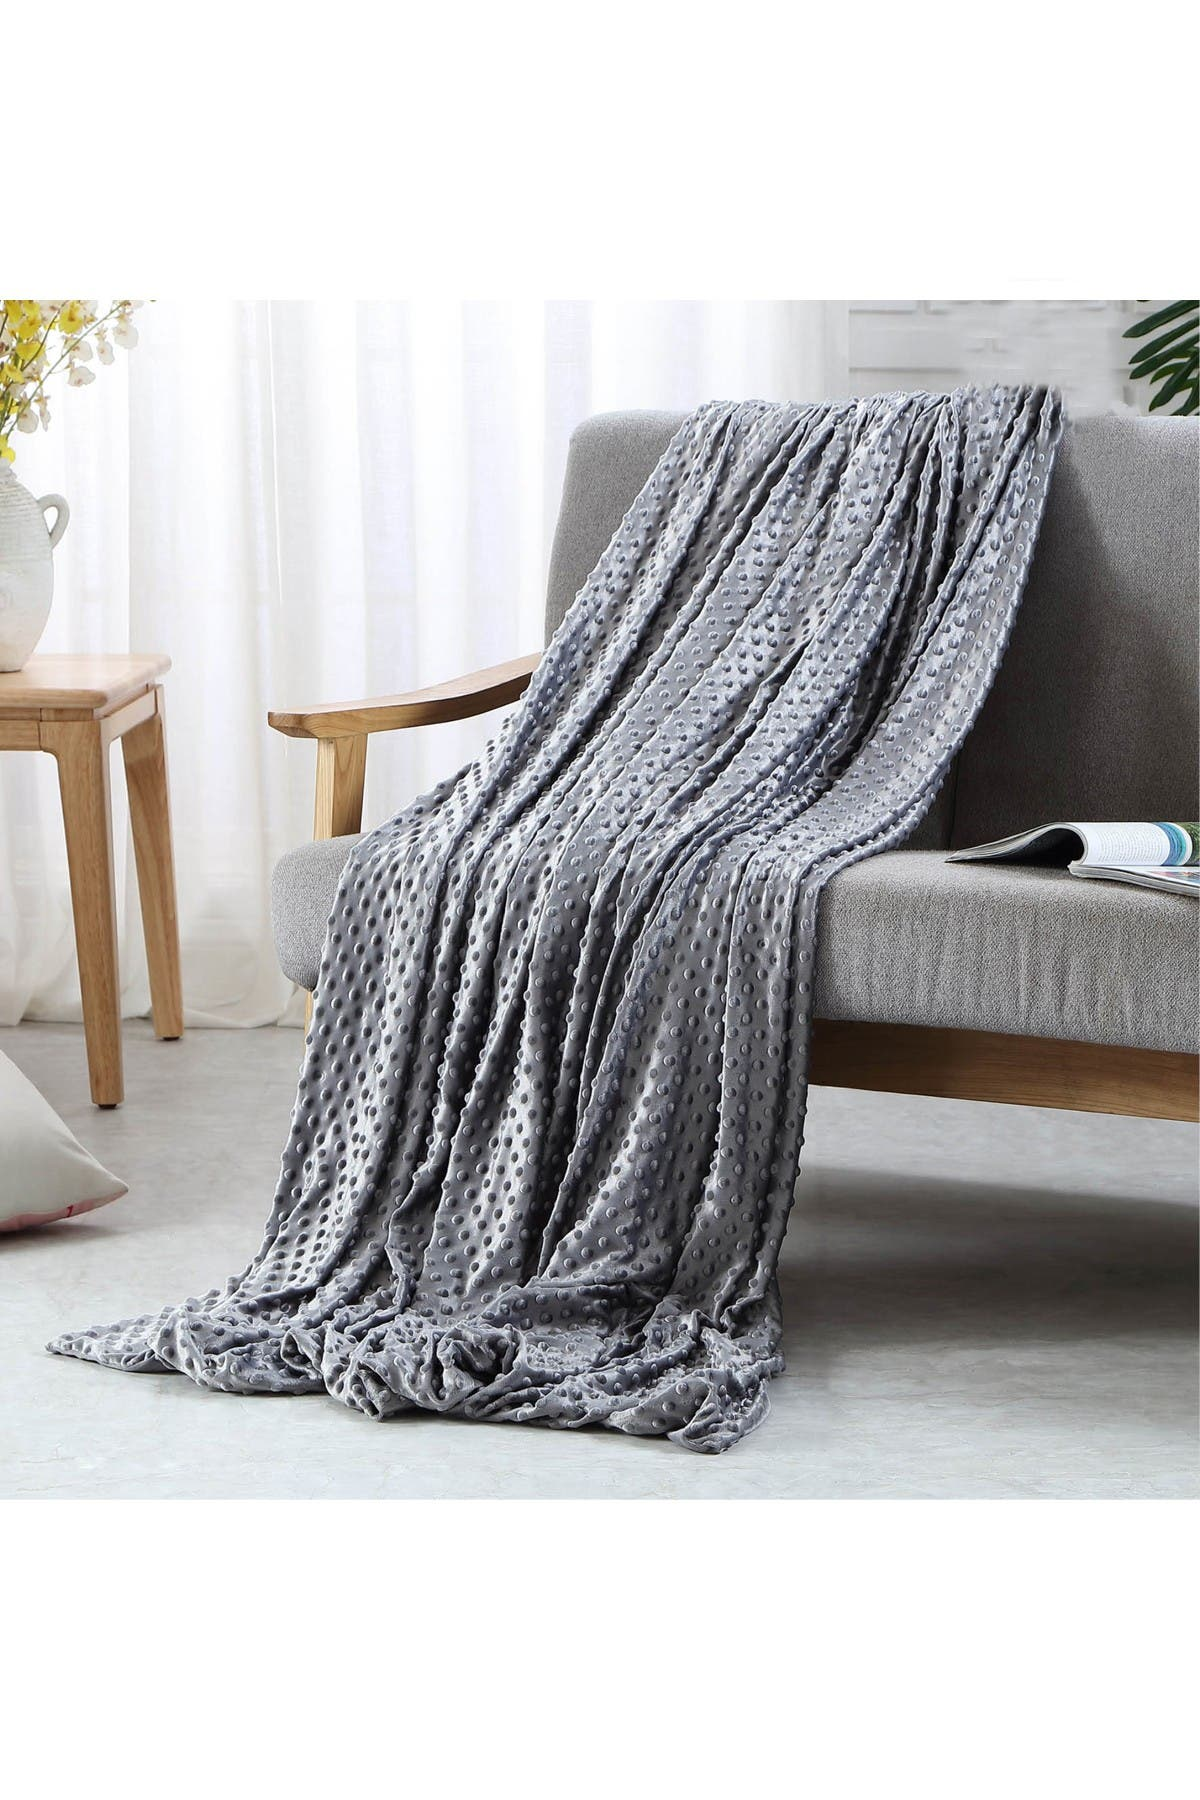 Image of Inspired Home Cozy Tyme Adami Weighted 25lbs Blanket - Grey